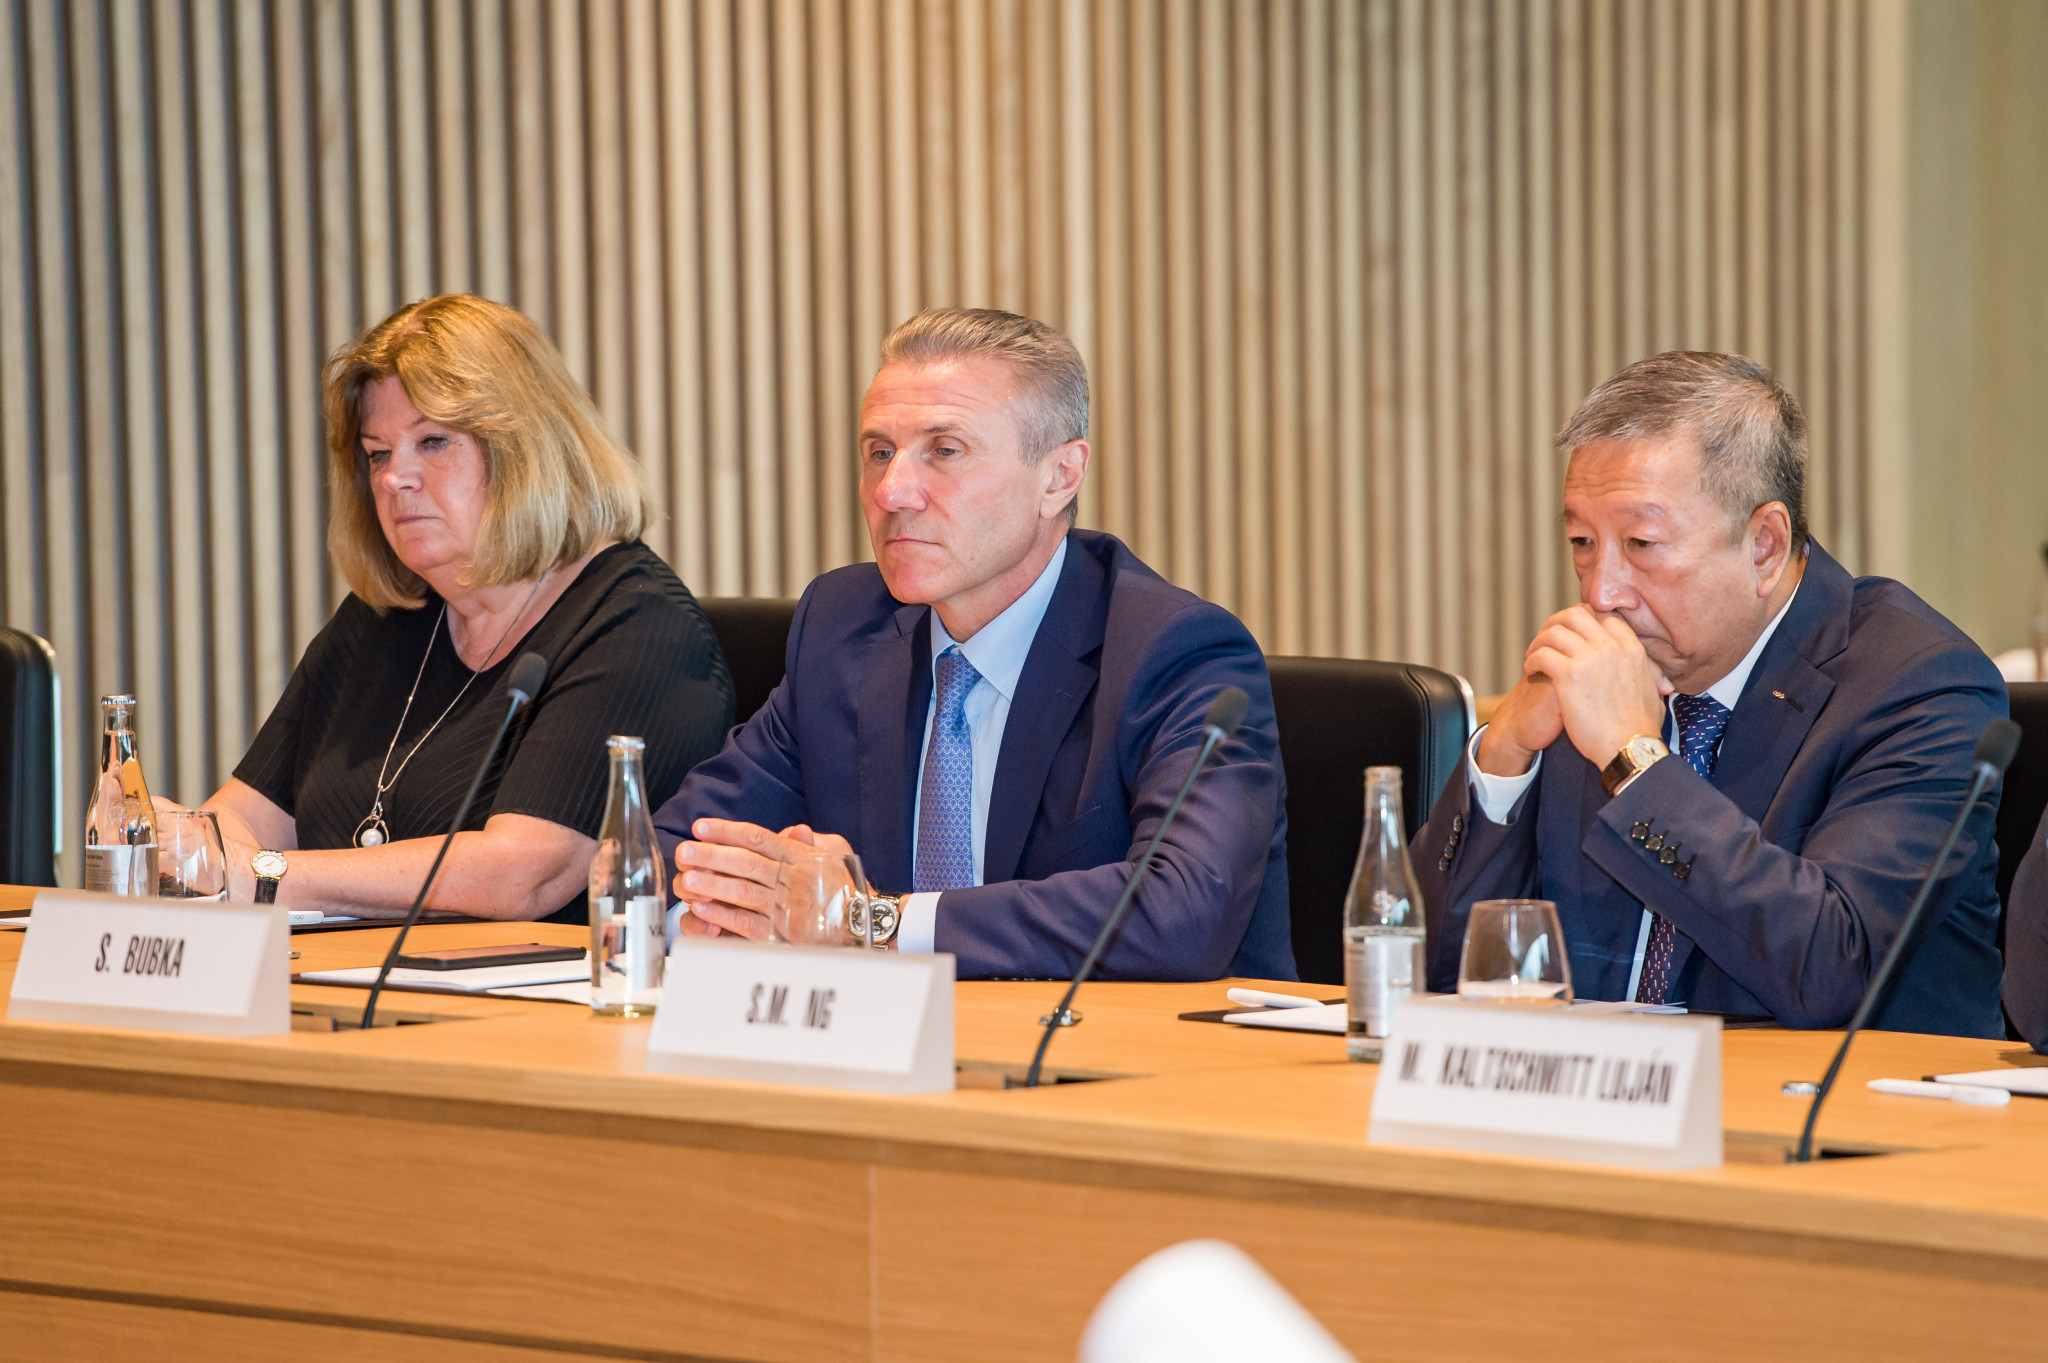 Sergey Bubka, centre, is a member of the IOC Executive Board, President of the National Olympic Committee of Ukraine and senior vice-president of the IAAF ©Getty Images